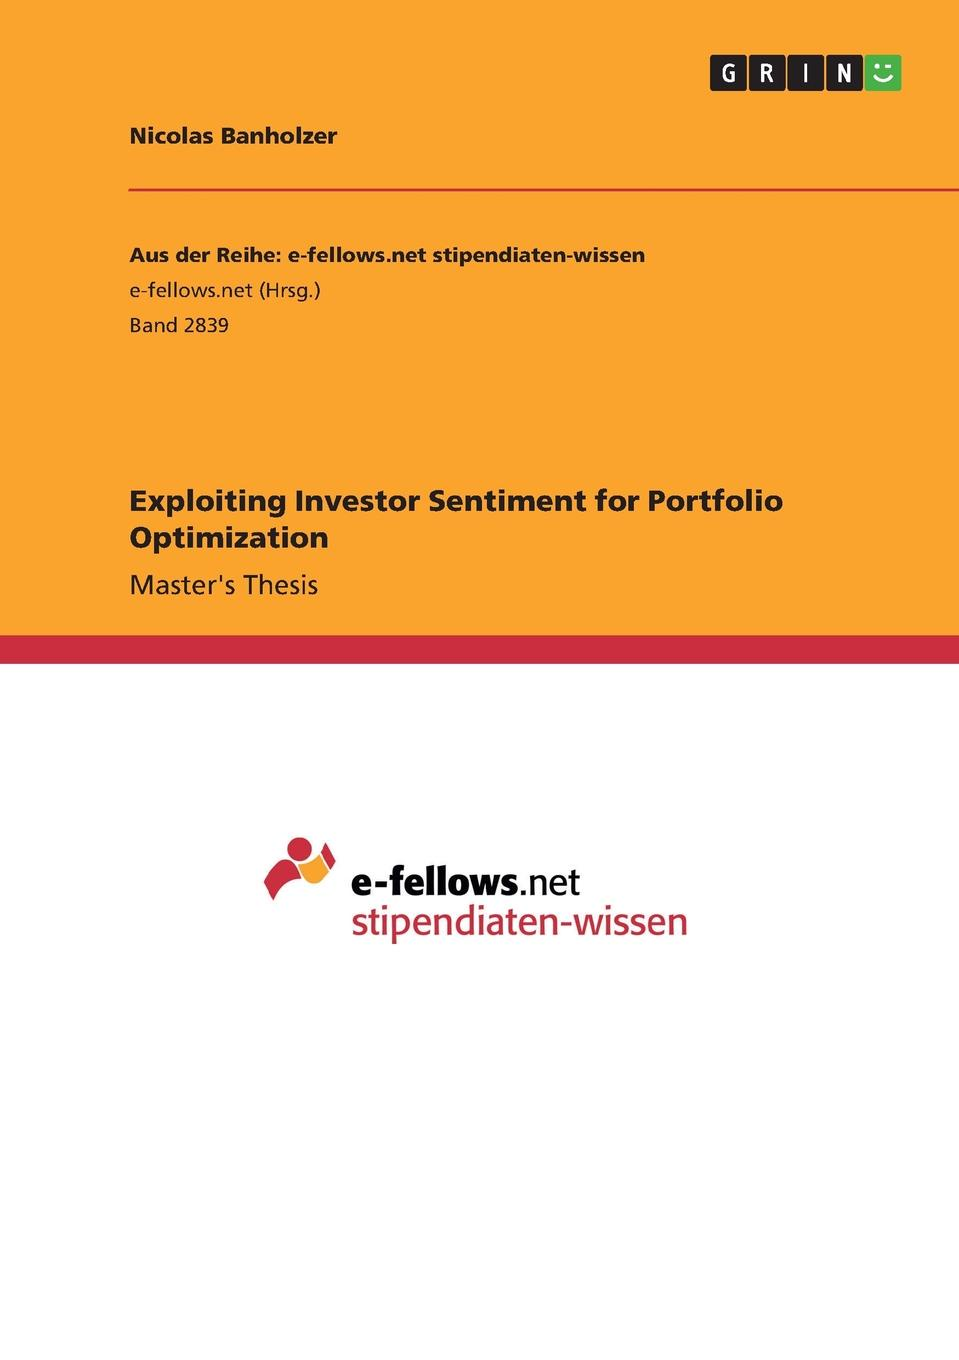 Nicolas Banholzer Exploiting Investor Sentiment for Portfolio Optimization halil kiymaz market microstructure in emerging and developed markets price discovery information flows and transaction costs